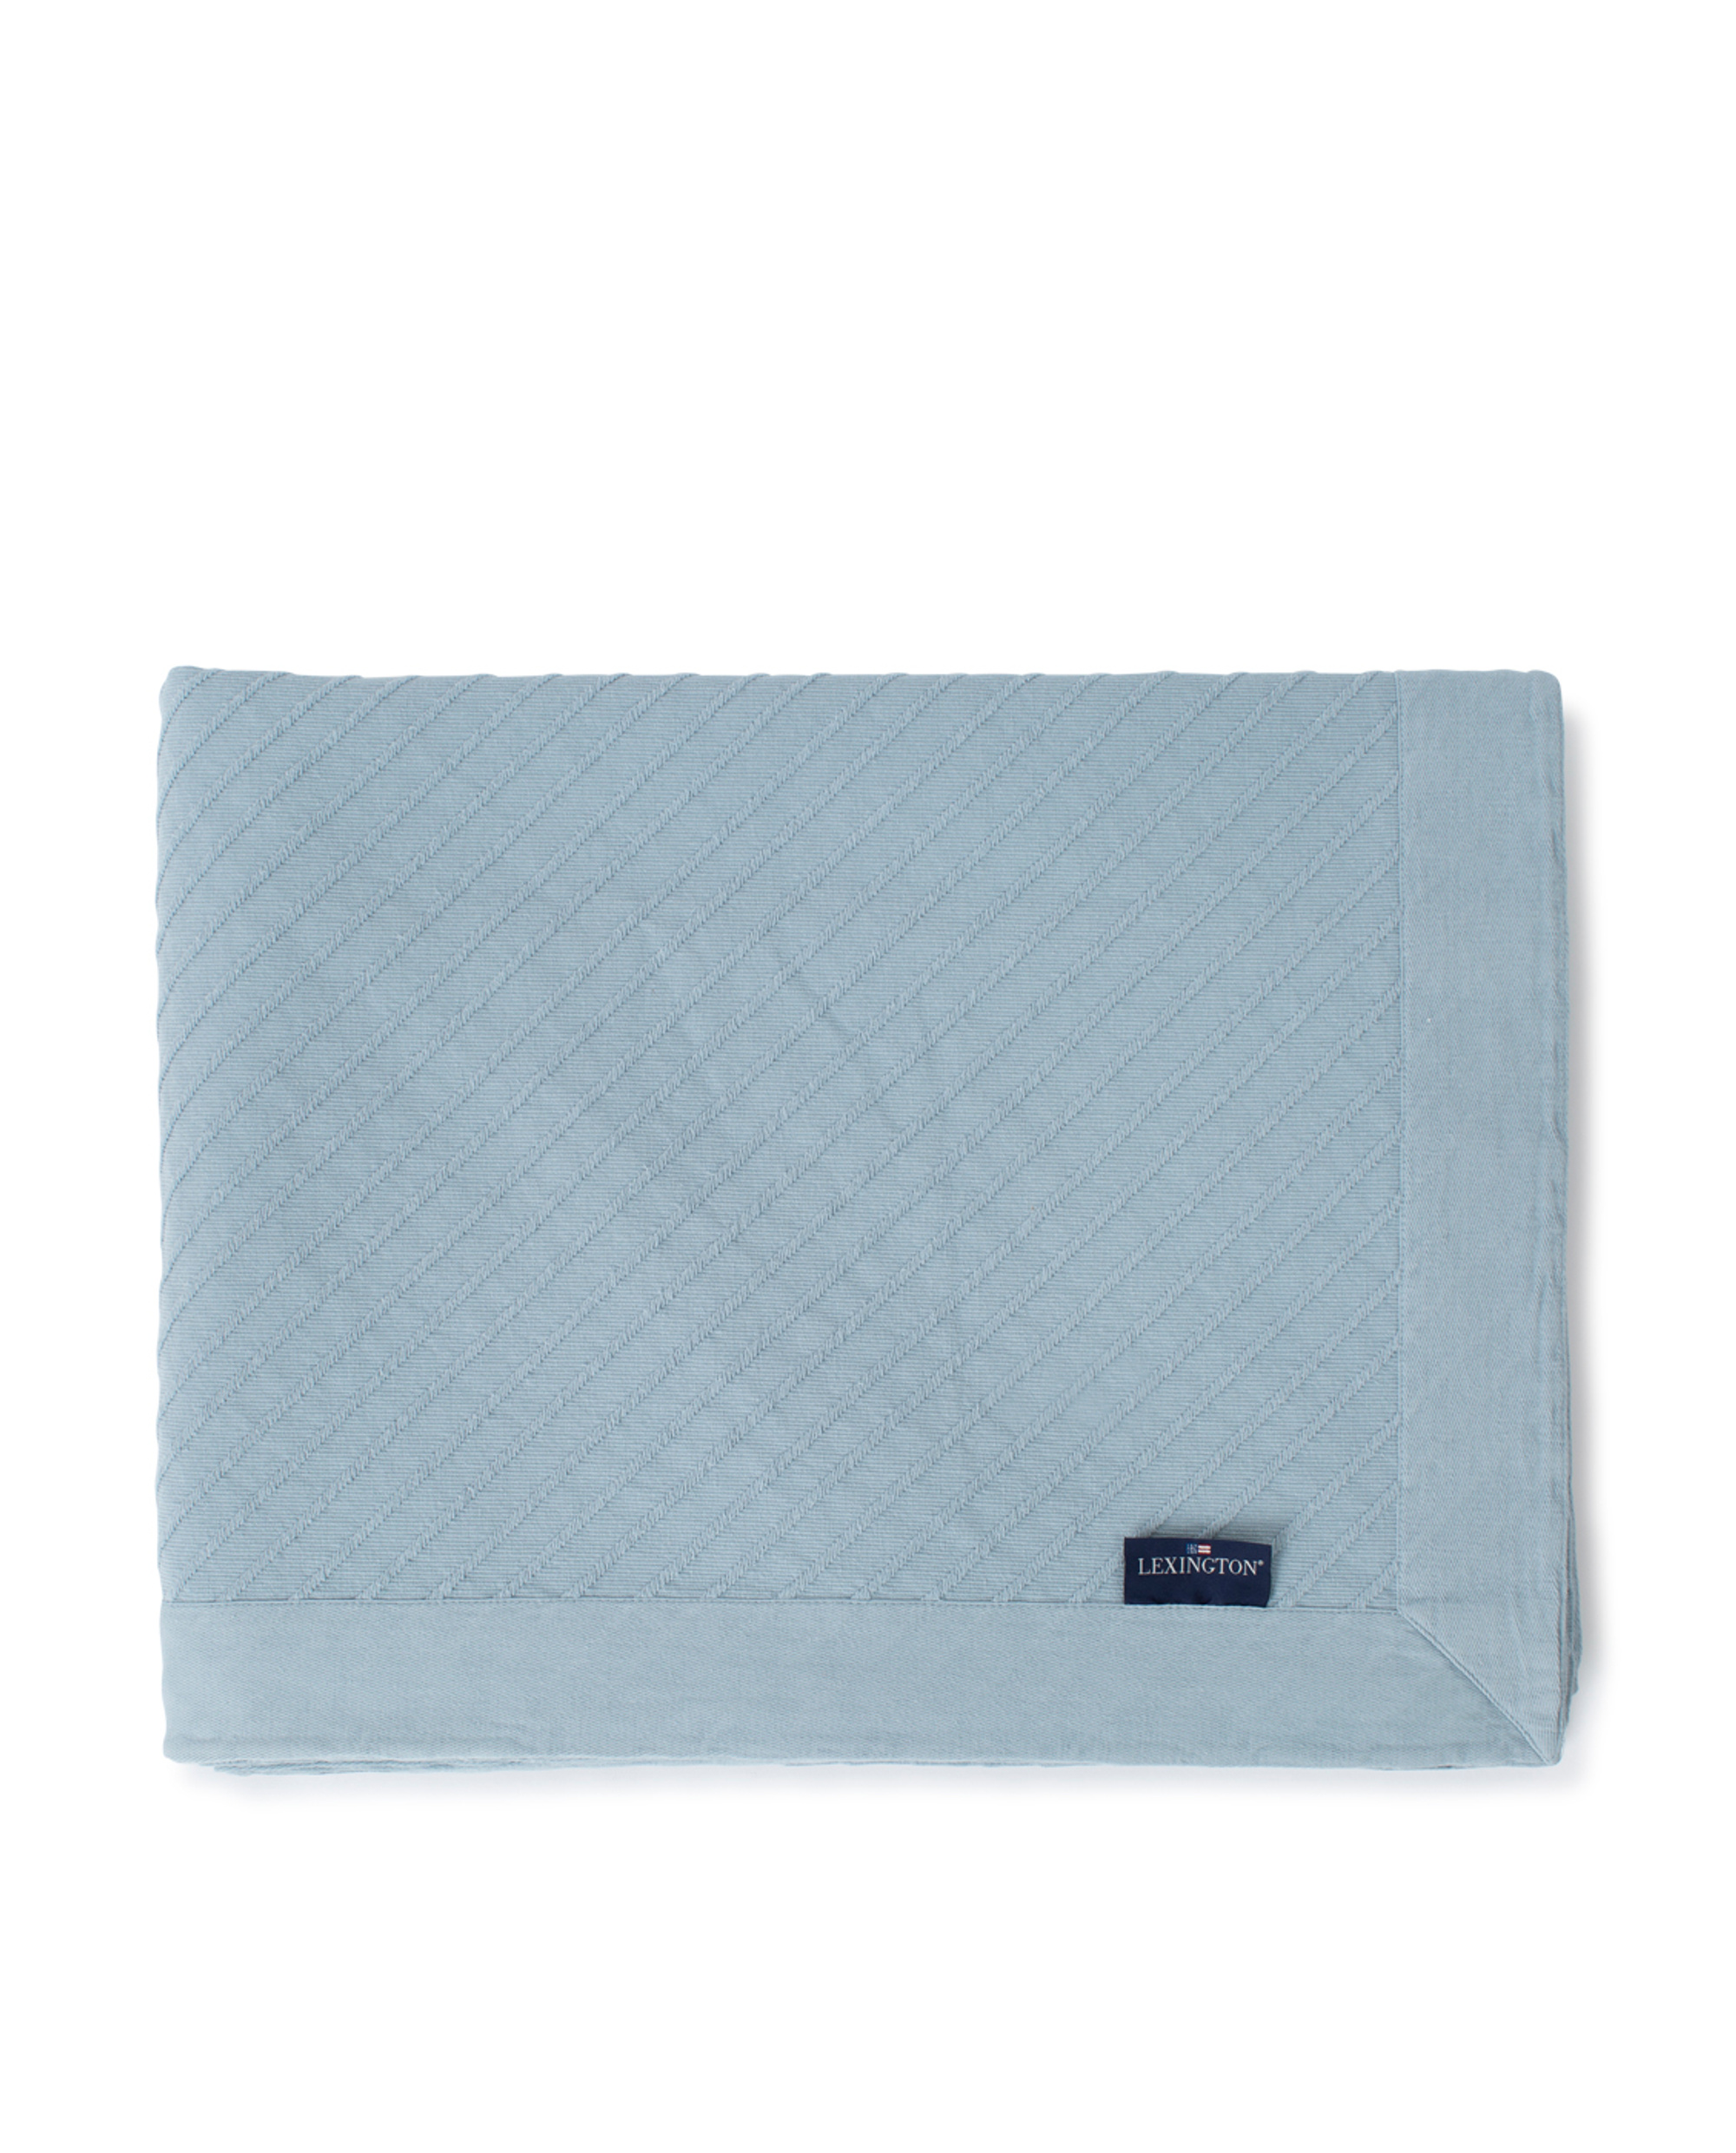 Diagonal Structured Cotton Bedspread, Light Blue